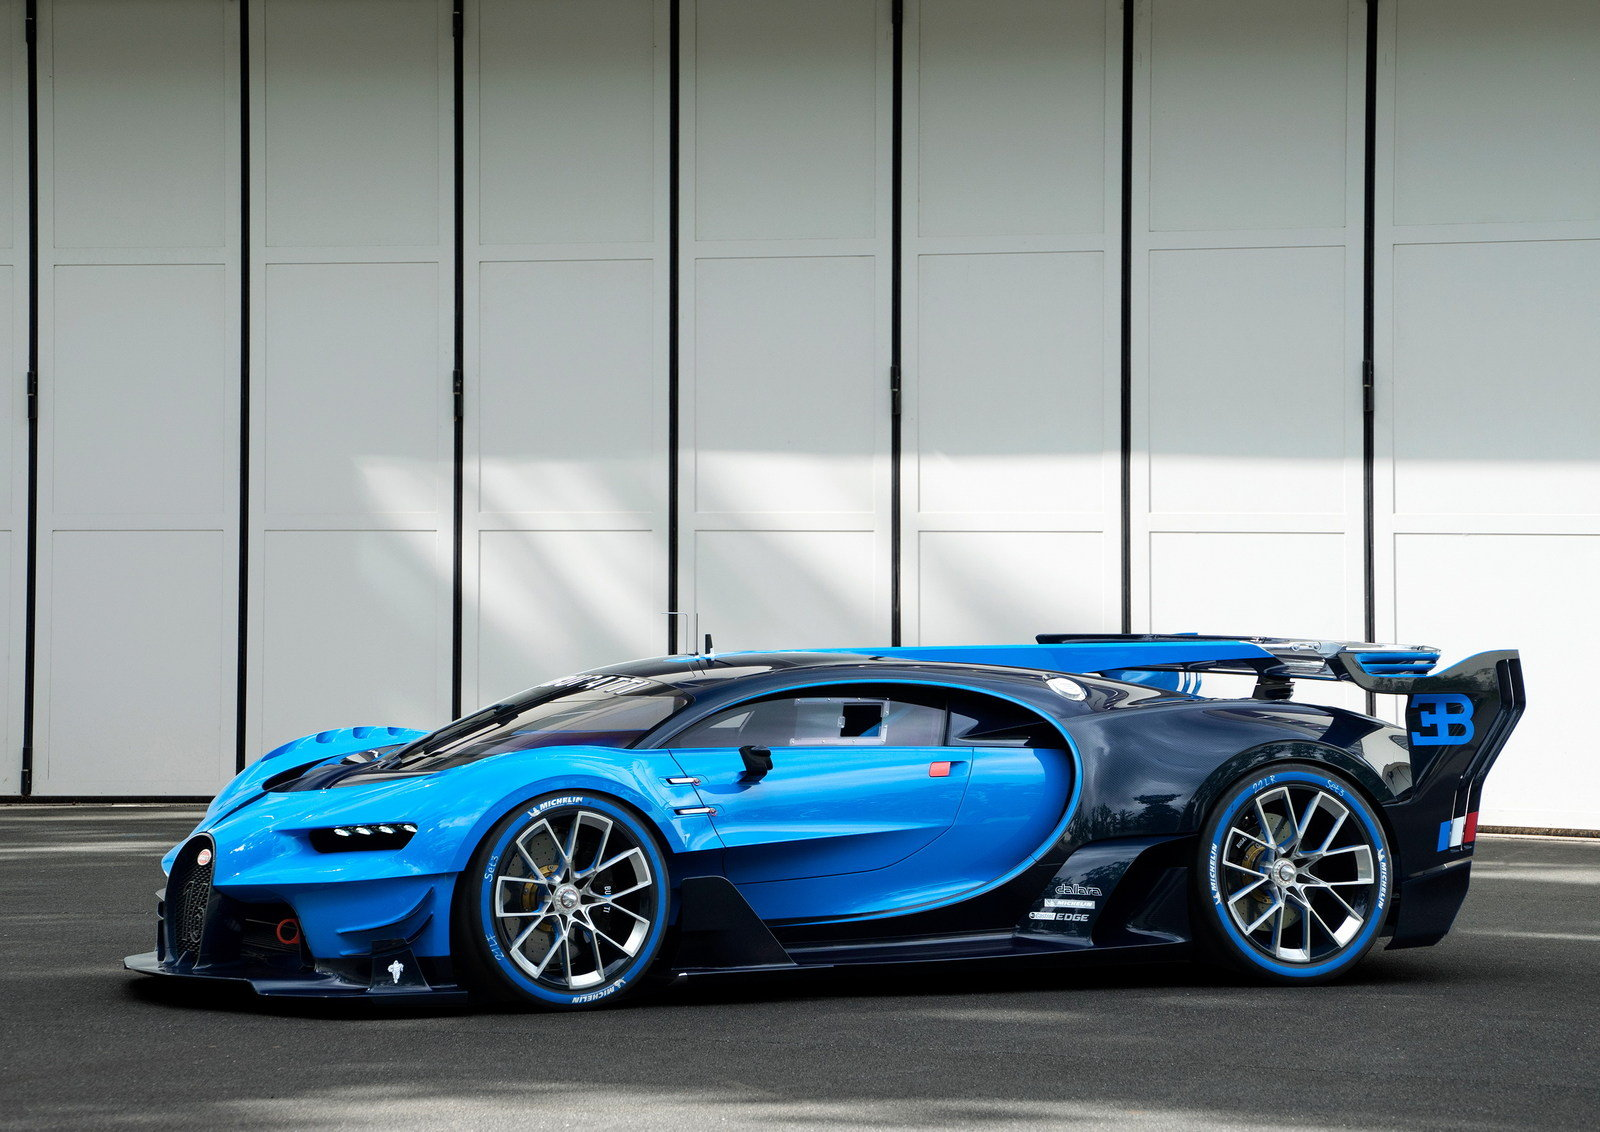 2016 bugatti vision gran turismo picture 645891 car review top speed. Black Bedroom Furniture Sets. Home Design Ideas